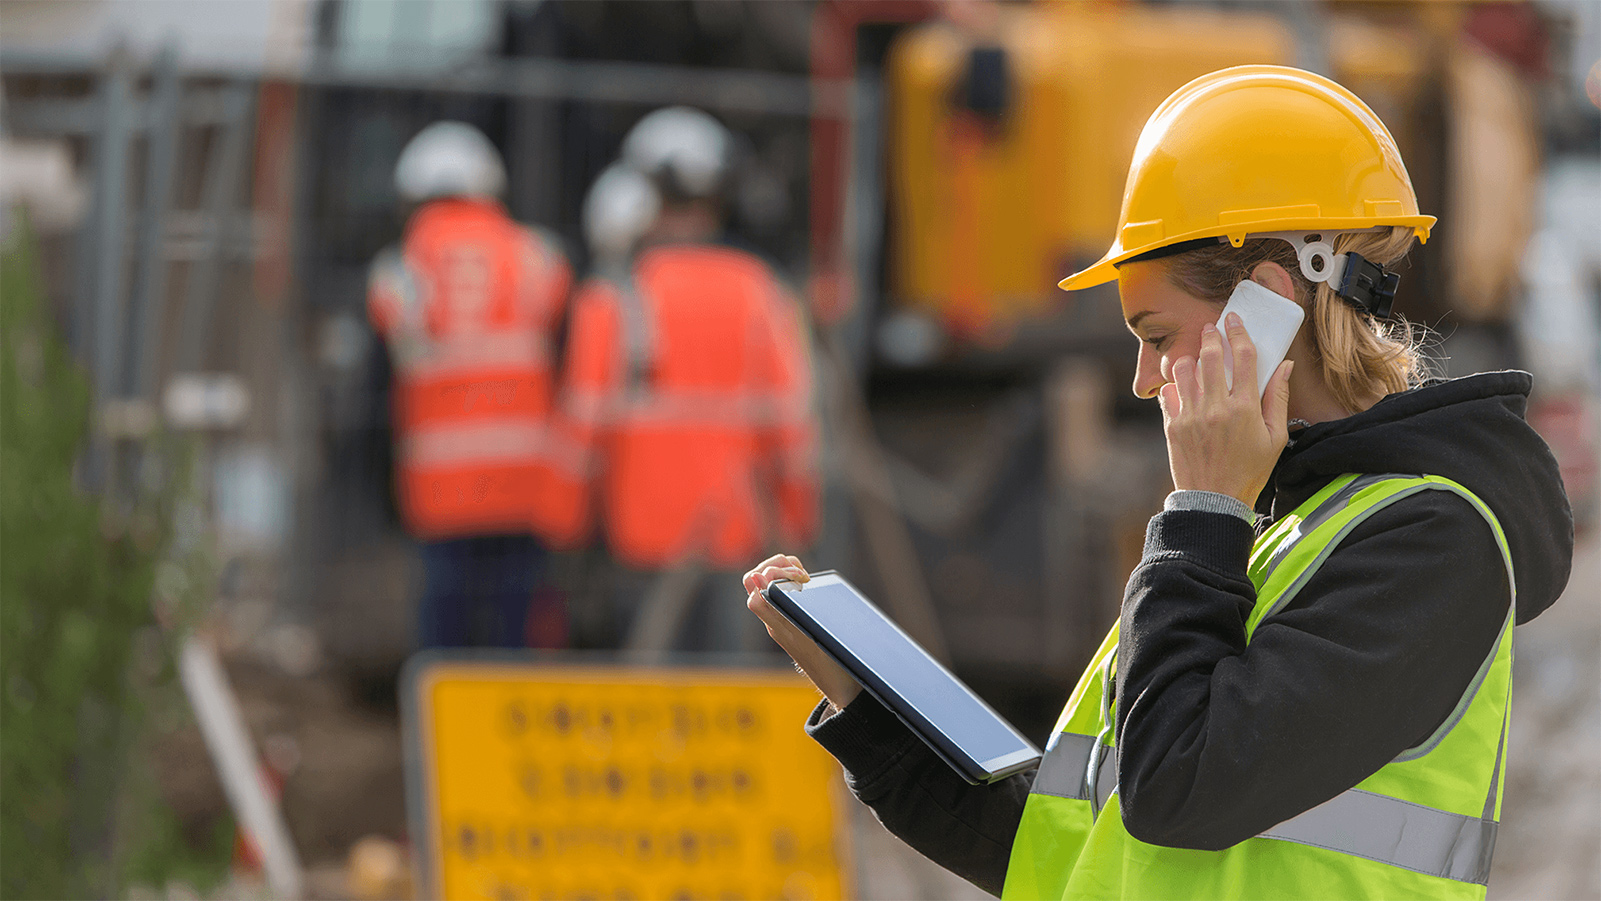 Construction worker talking on her phone at a construction site.